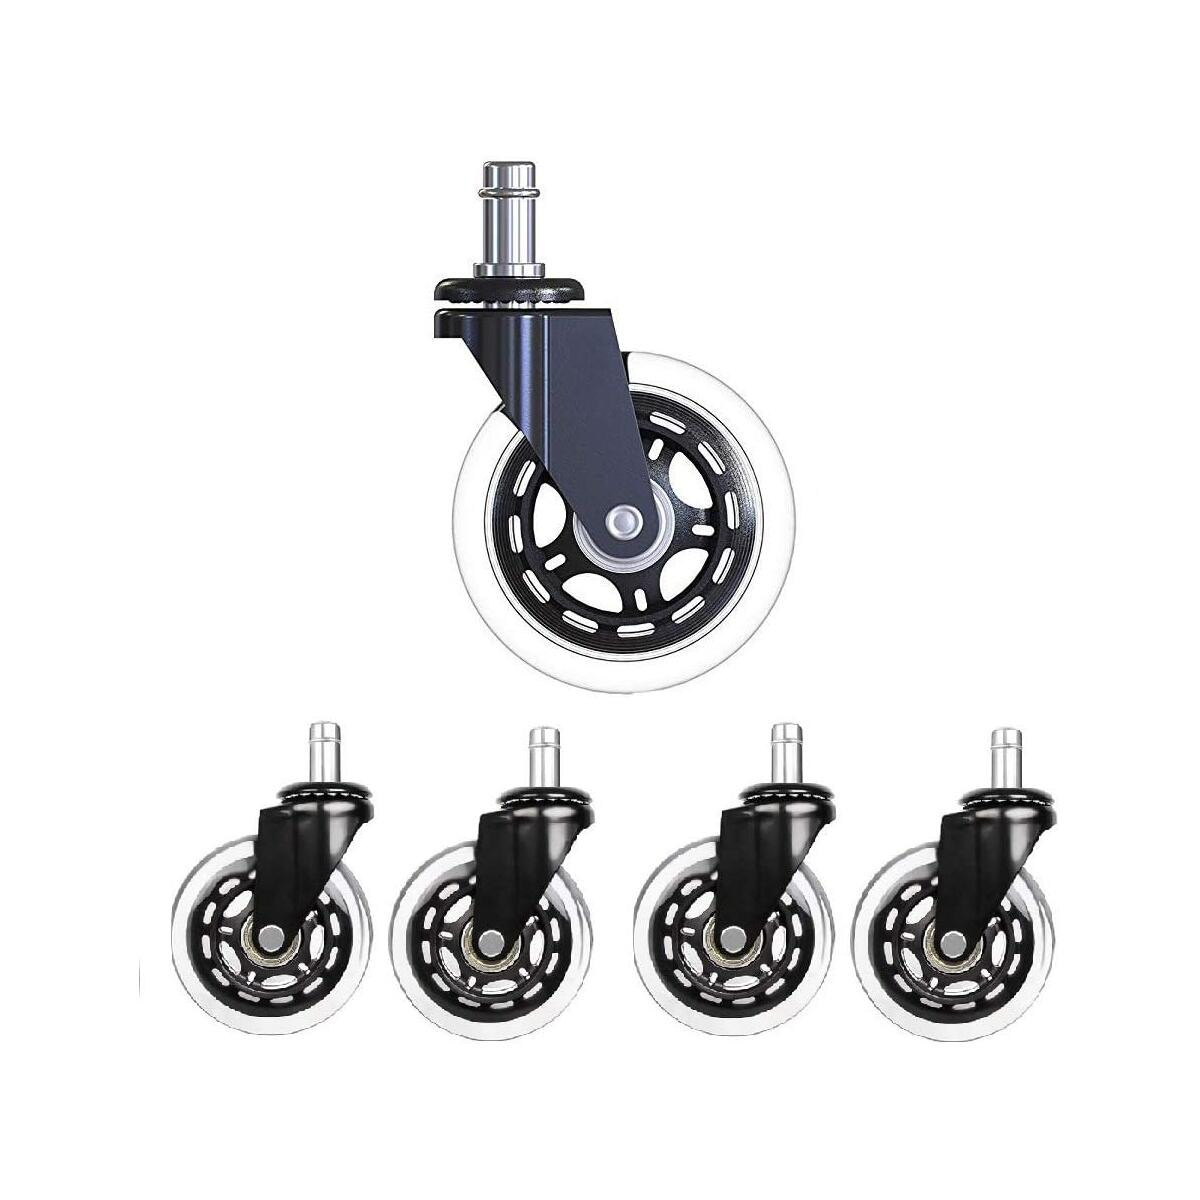 BigTron Office Chair Wheels Replacement, Heavy Duty 3 Rubber Chair Ball Casters for Carpet Hardwood Floors Wood-Set of 5